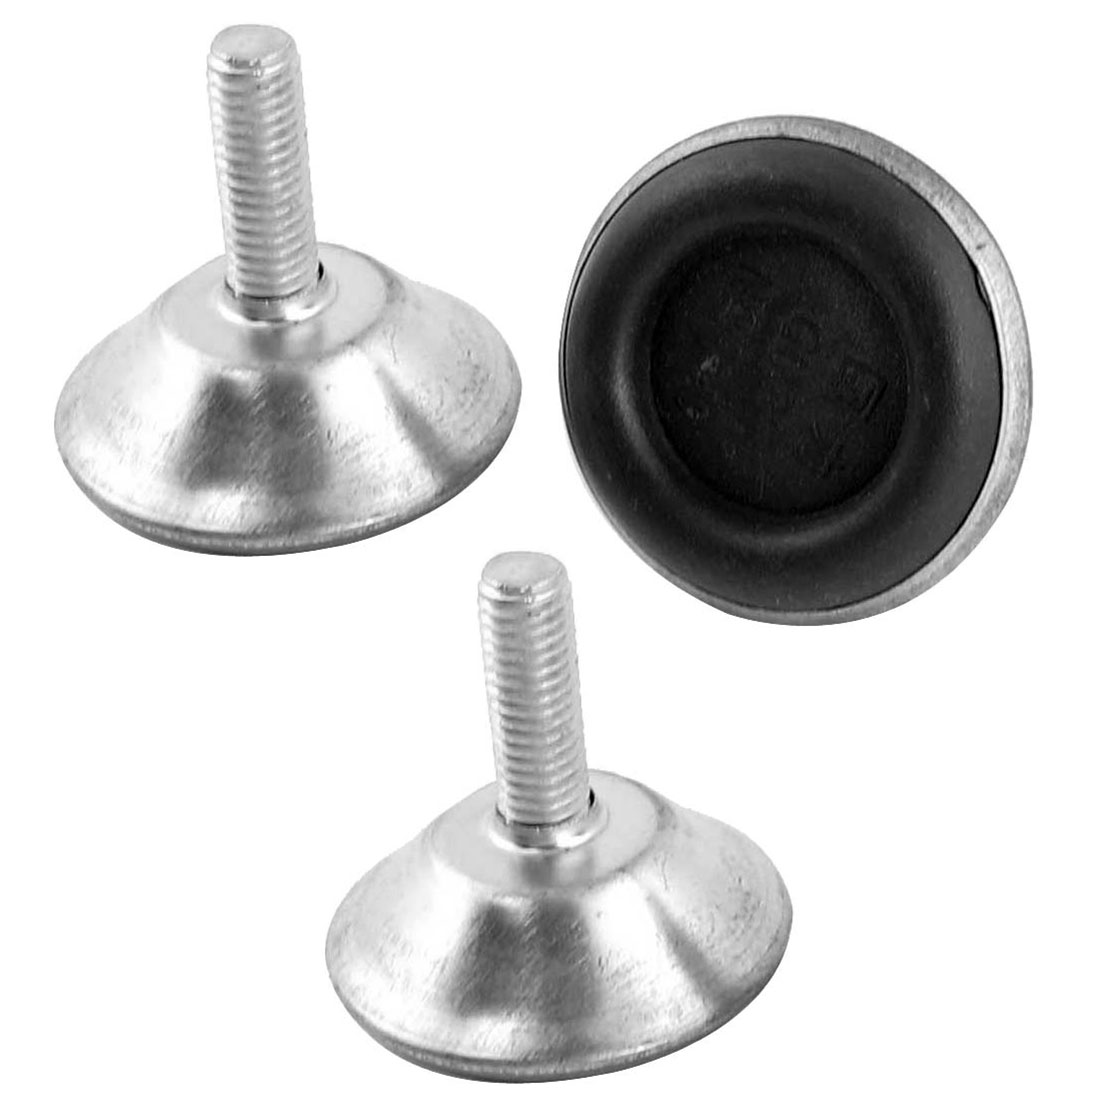 3 Pcs Round Head Threaded Metal Rod Leveling Adjuster Foot 8 x 21 x 40mm